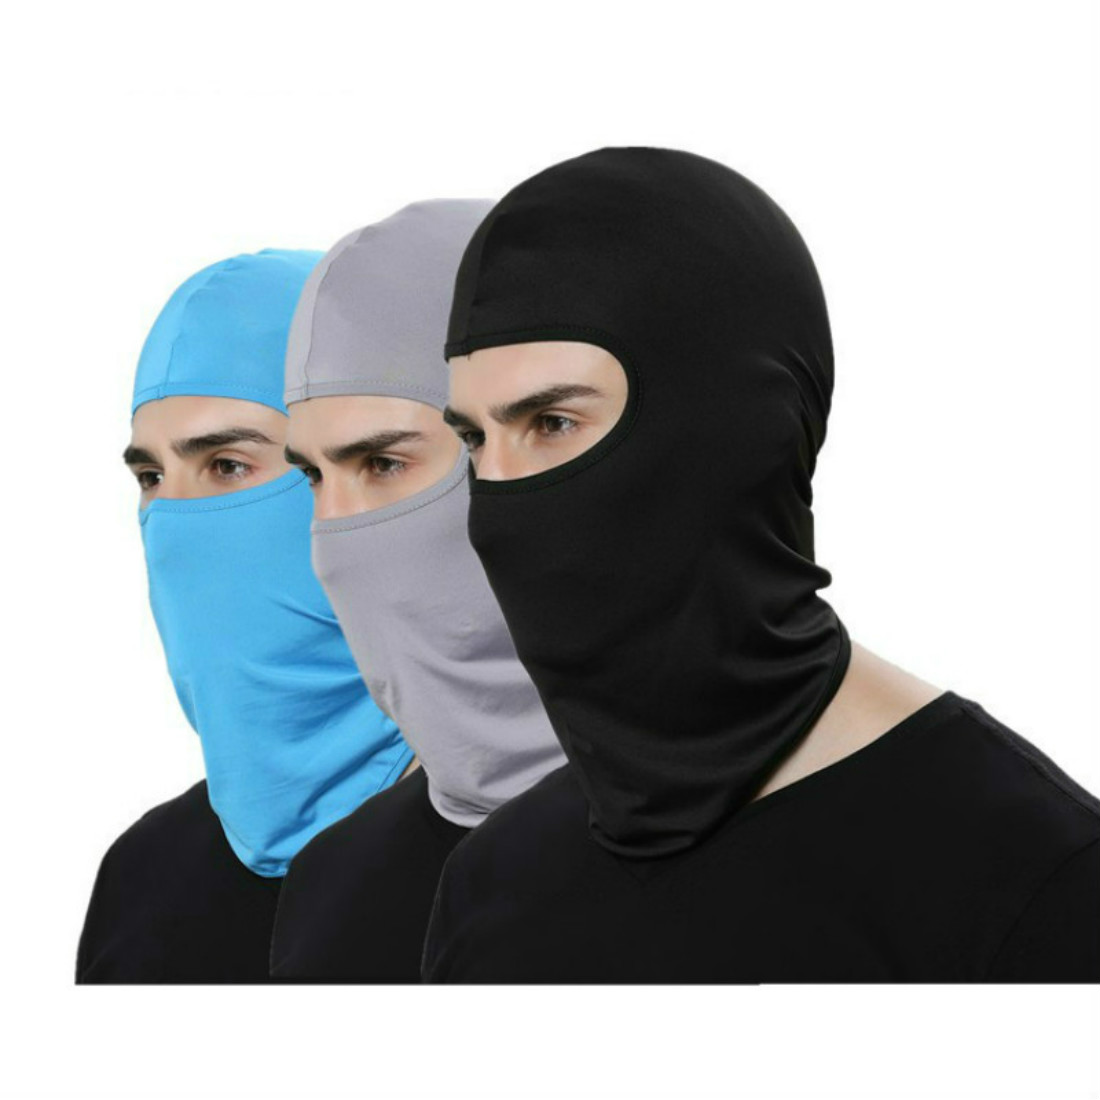 Men's Accessories Hot Sele Motorcycle Face Mask Cycling Ski Neck Protecting Outdoor Balaclava Full Face Mask Ultra Thin Breathable Windproof Mask Apparel Accessories